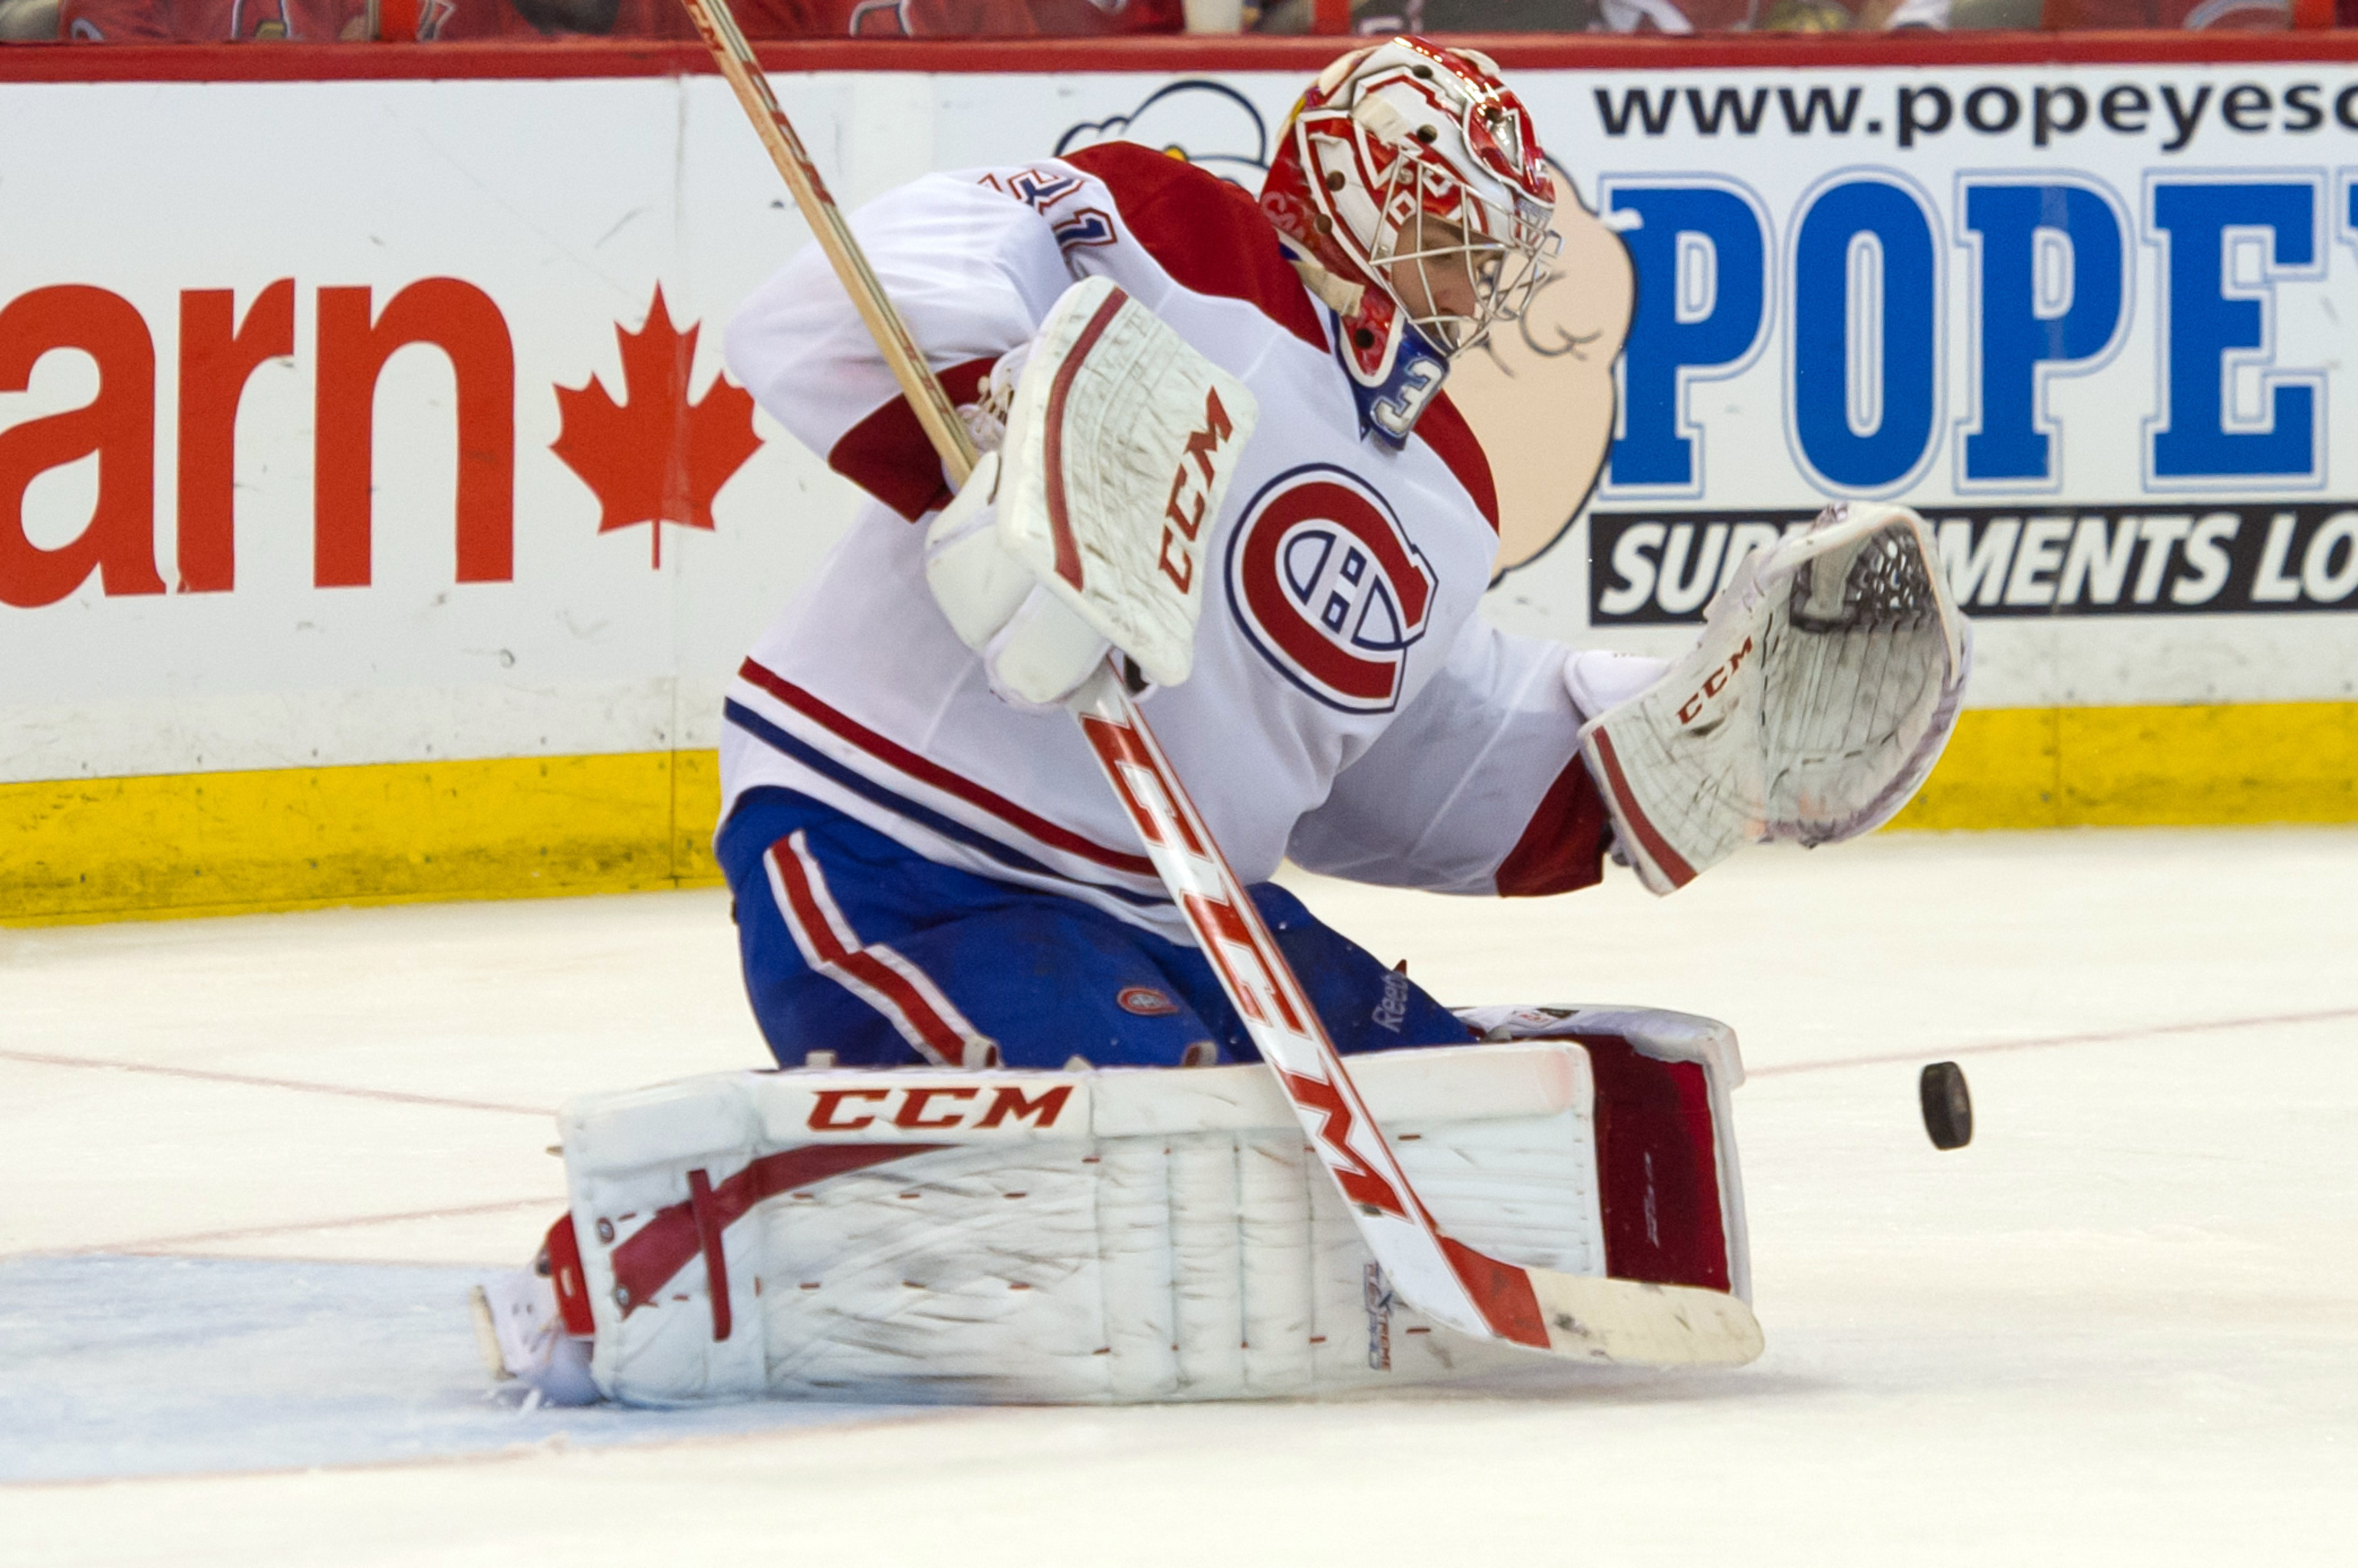 Could you bear to see this guy go the way of Patrick Roy if it meant a top draft pick?